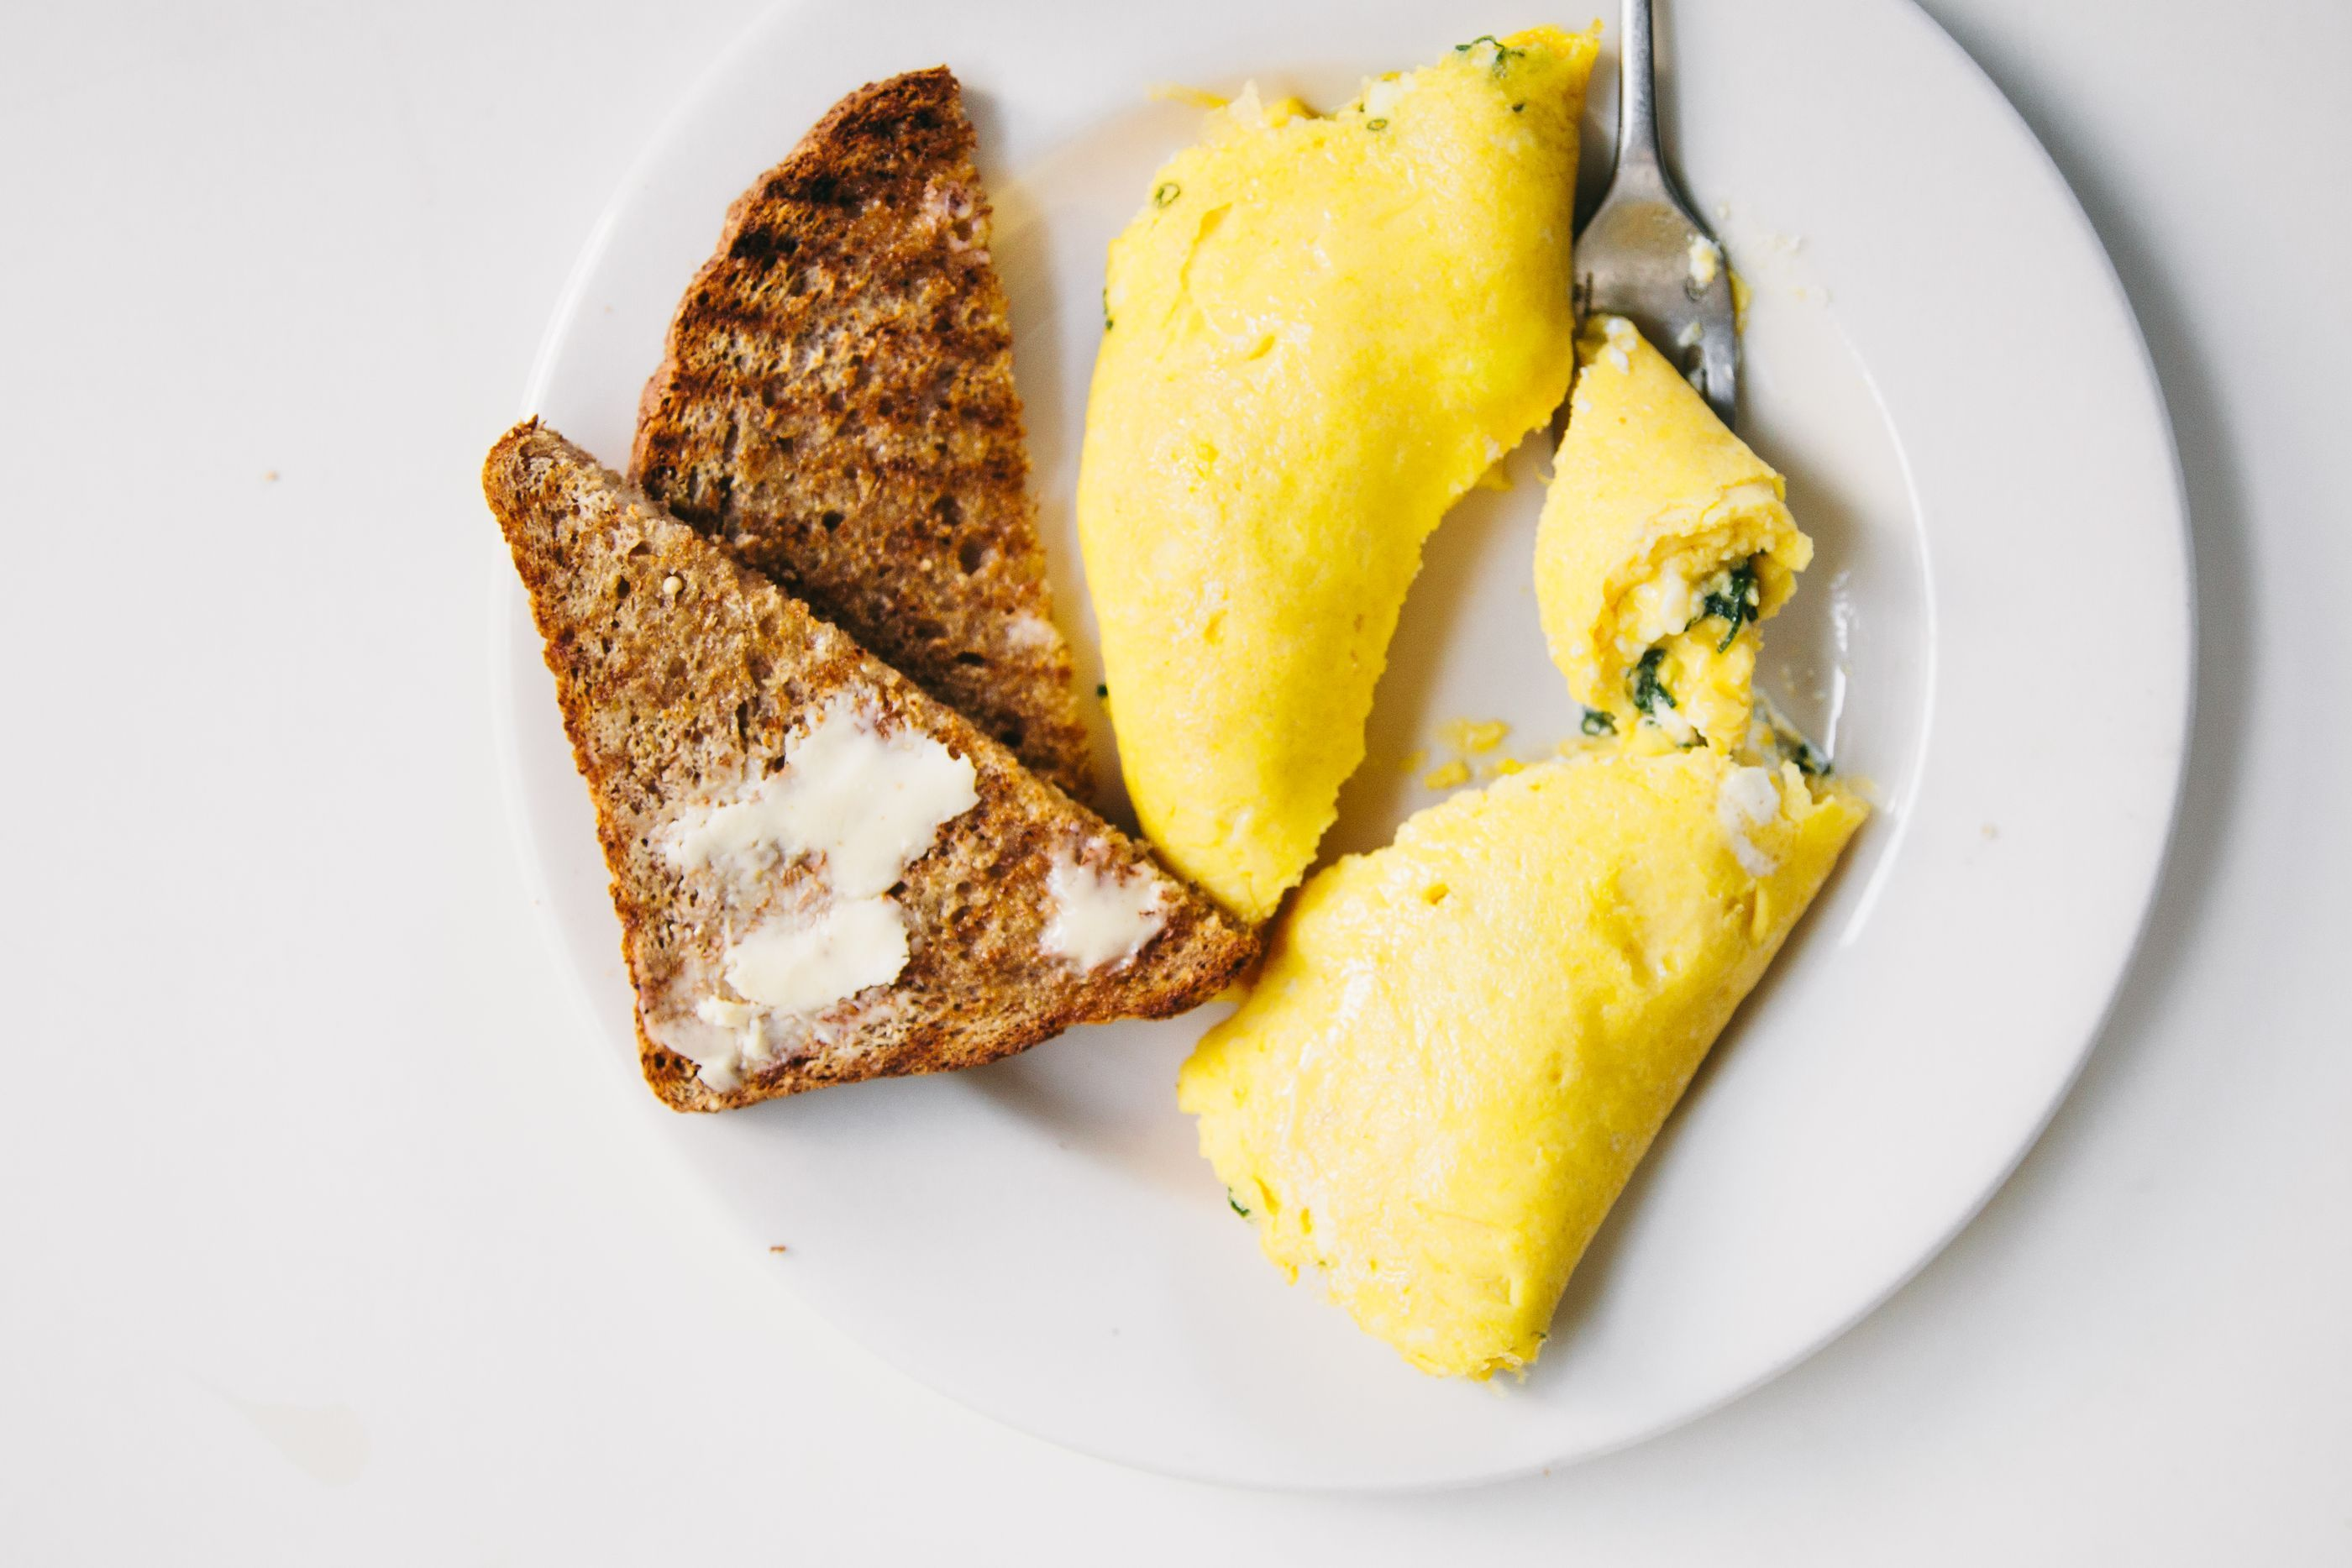 How to Make a French Omelette on Food52